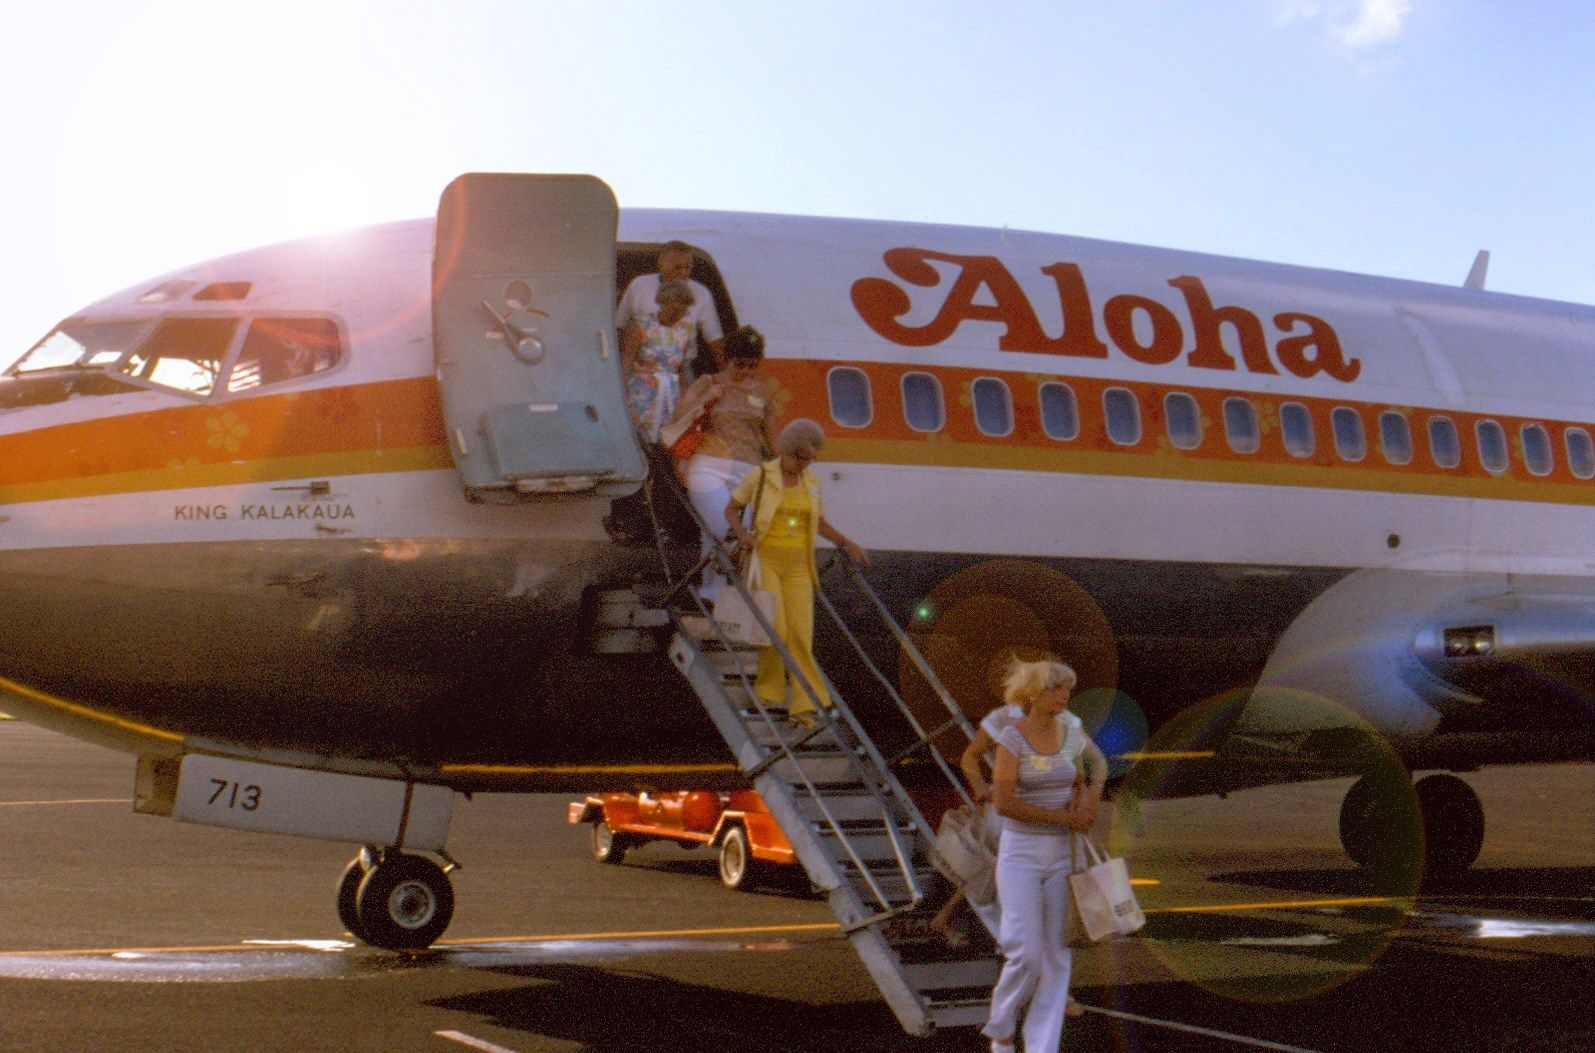 Vintage 1970s Honolulu airport going to Kauai...perhaps